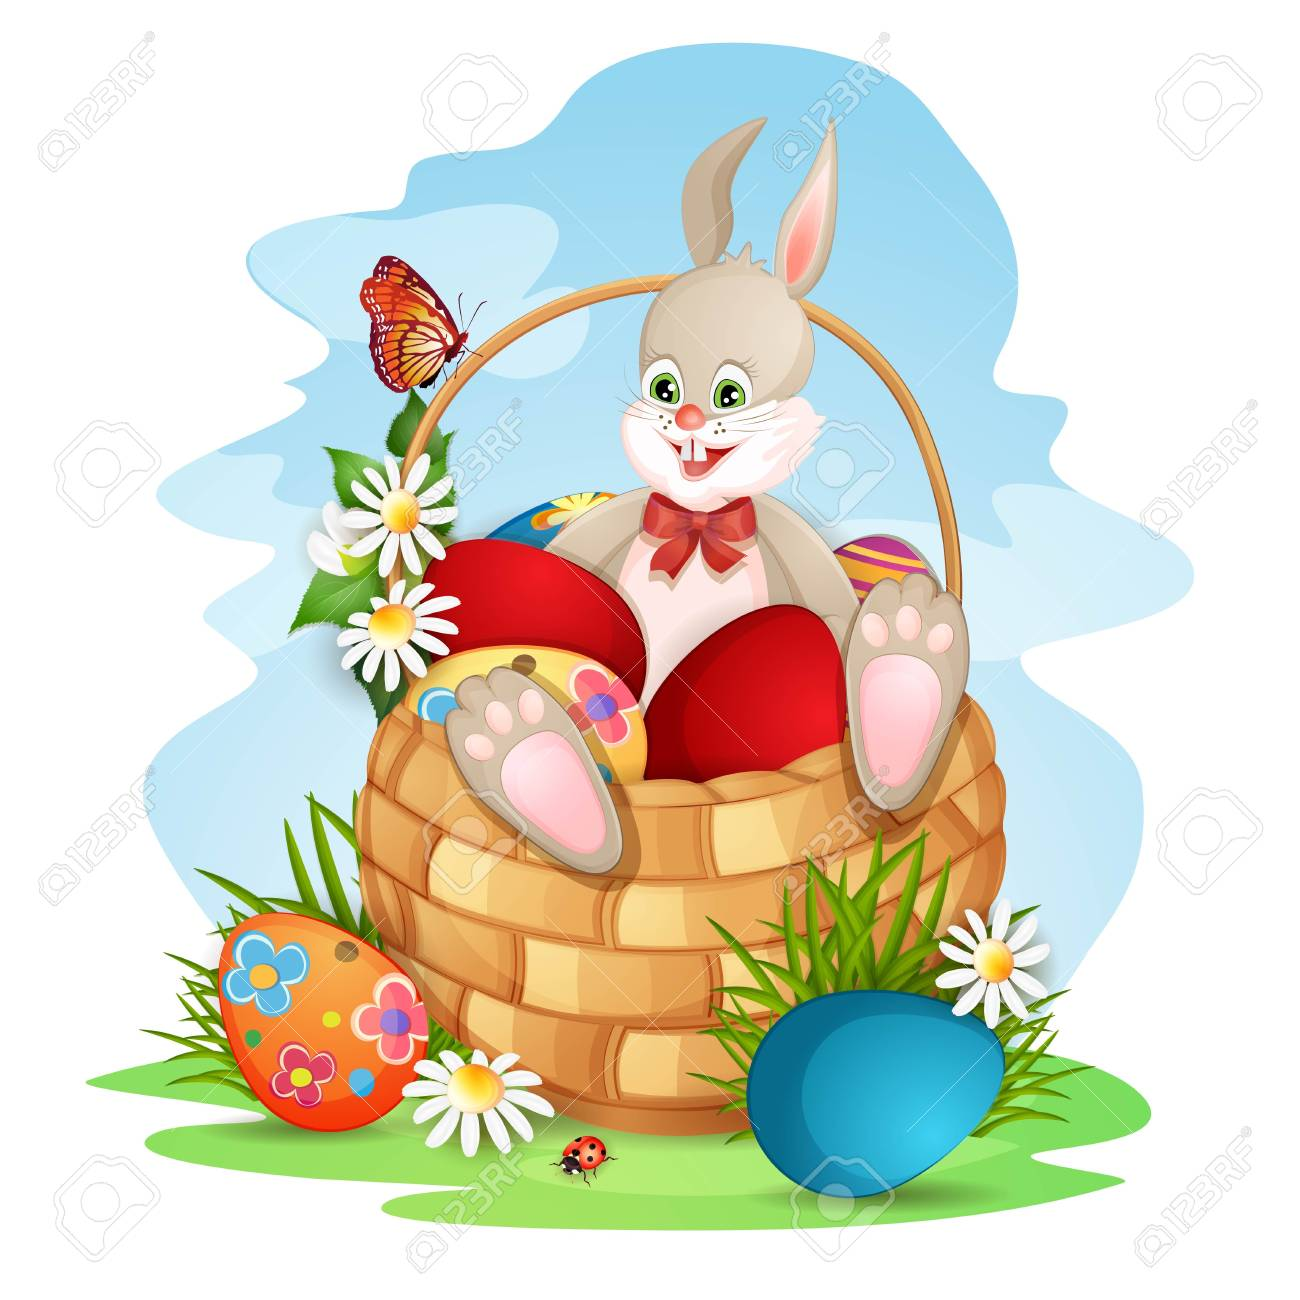 Easter greeting card with cute bunny in basket with Easter eggs Stock Vector - 18641158